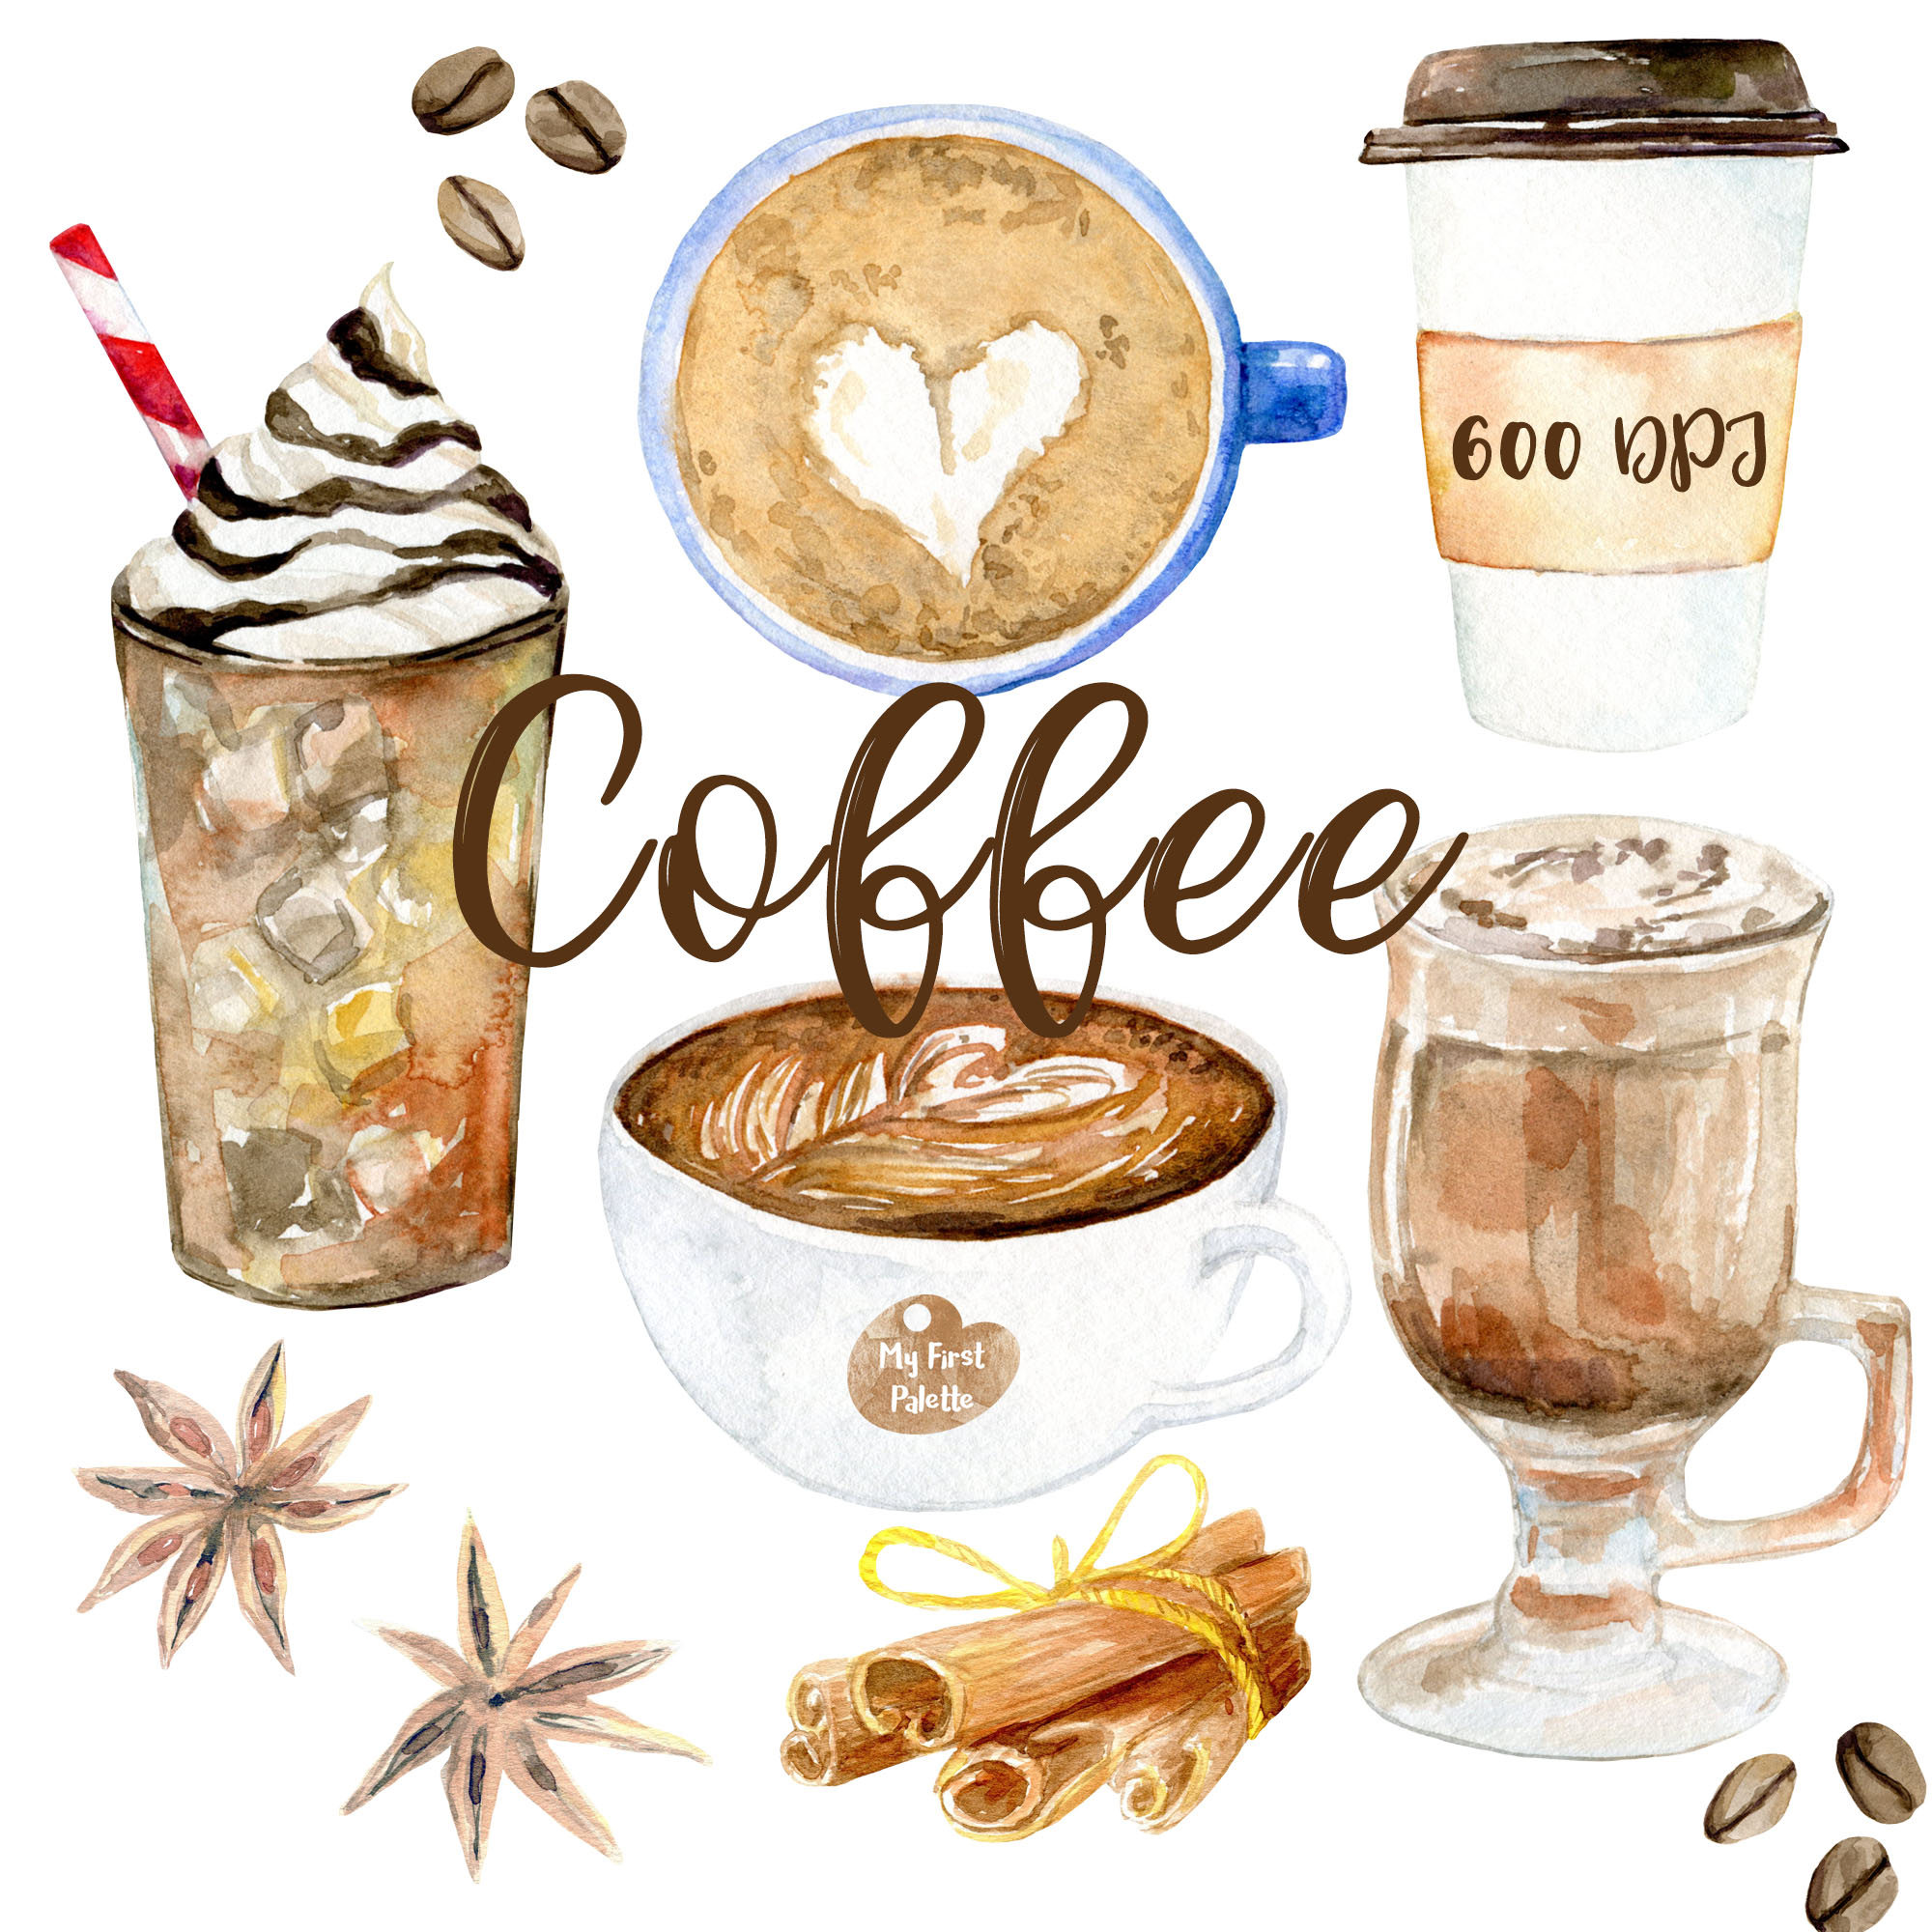 Watercolor coffee clipart 600 dpi png drink collection for Coffee watercolor